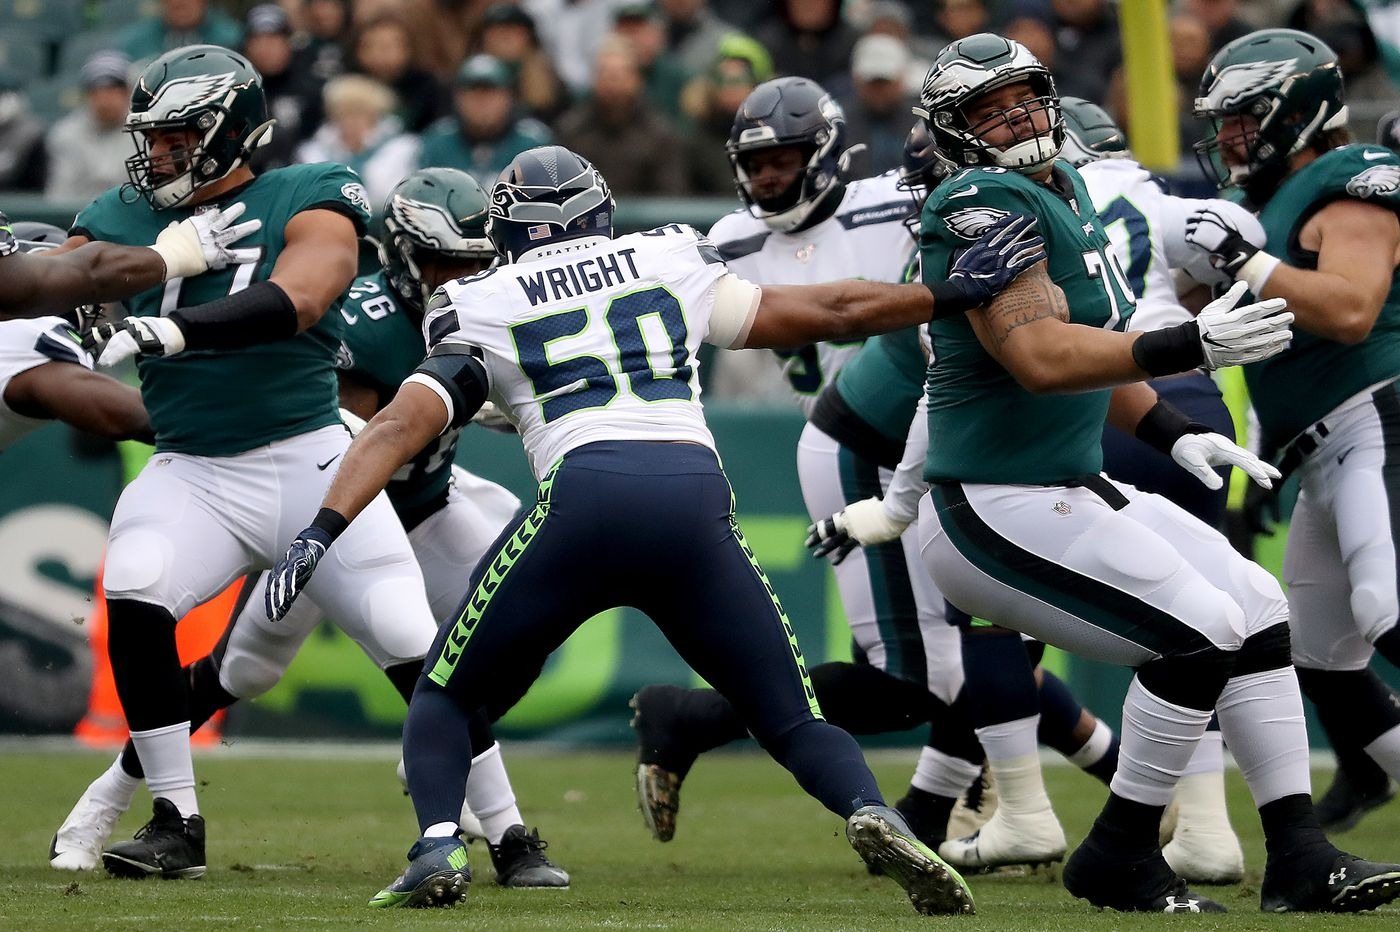 The Eagles' Brandon Brooks' anxiety doesn't make him weak. It makes him human. | Mike Sielski